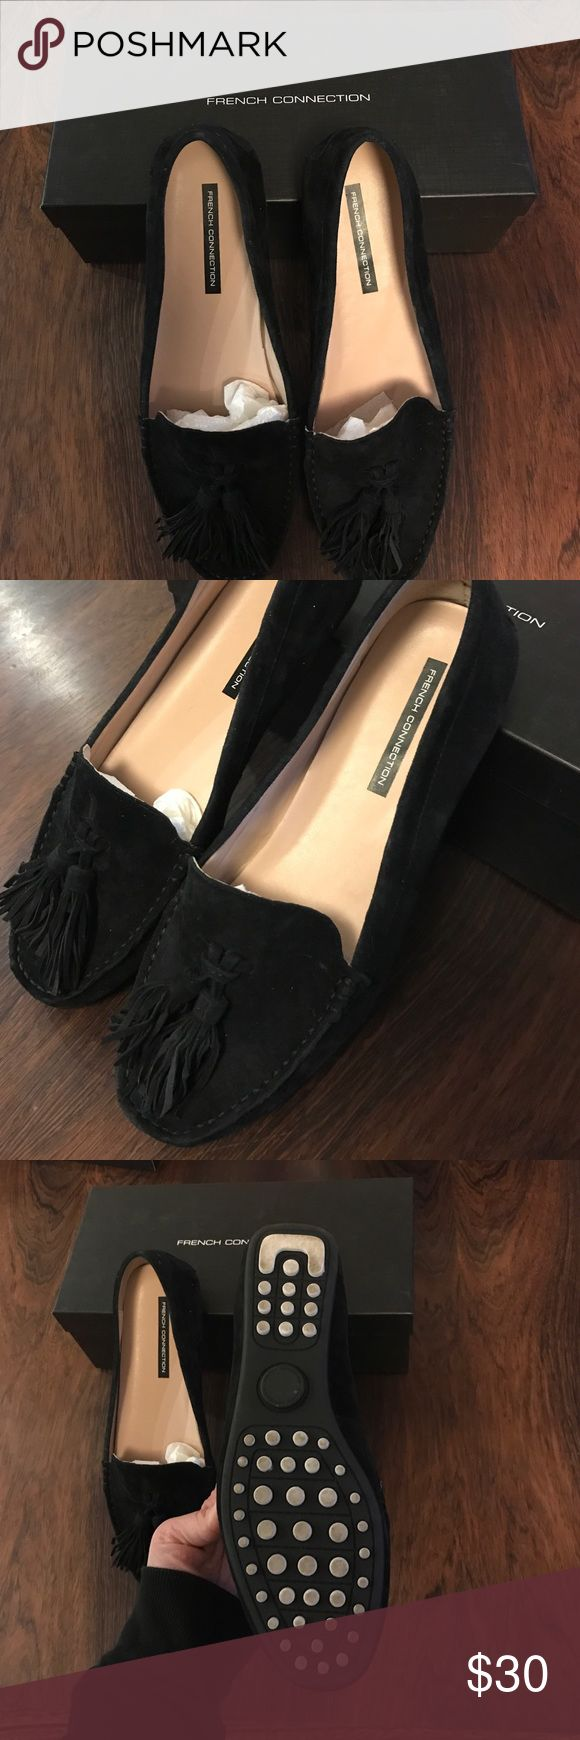 French Connection Black Suede Loafers Super comfortable and adorable loafers! They are Black Suede with on-trend tassels. They were worn one time outside of the house. French Connection Shoes Flats & Loafers